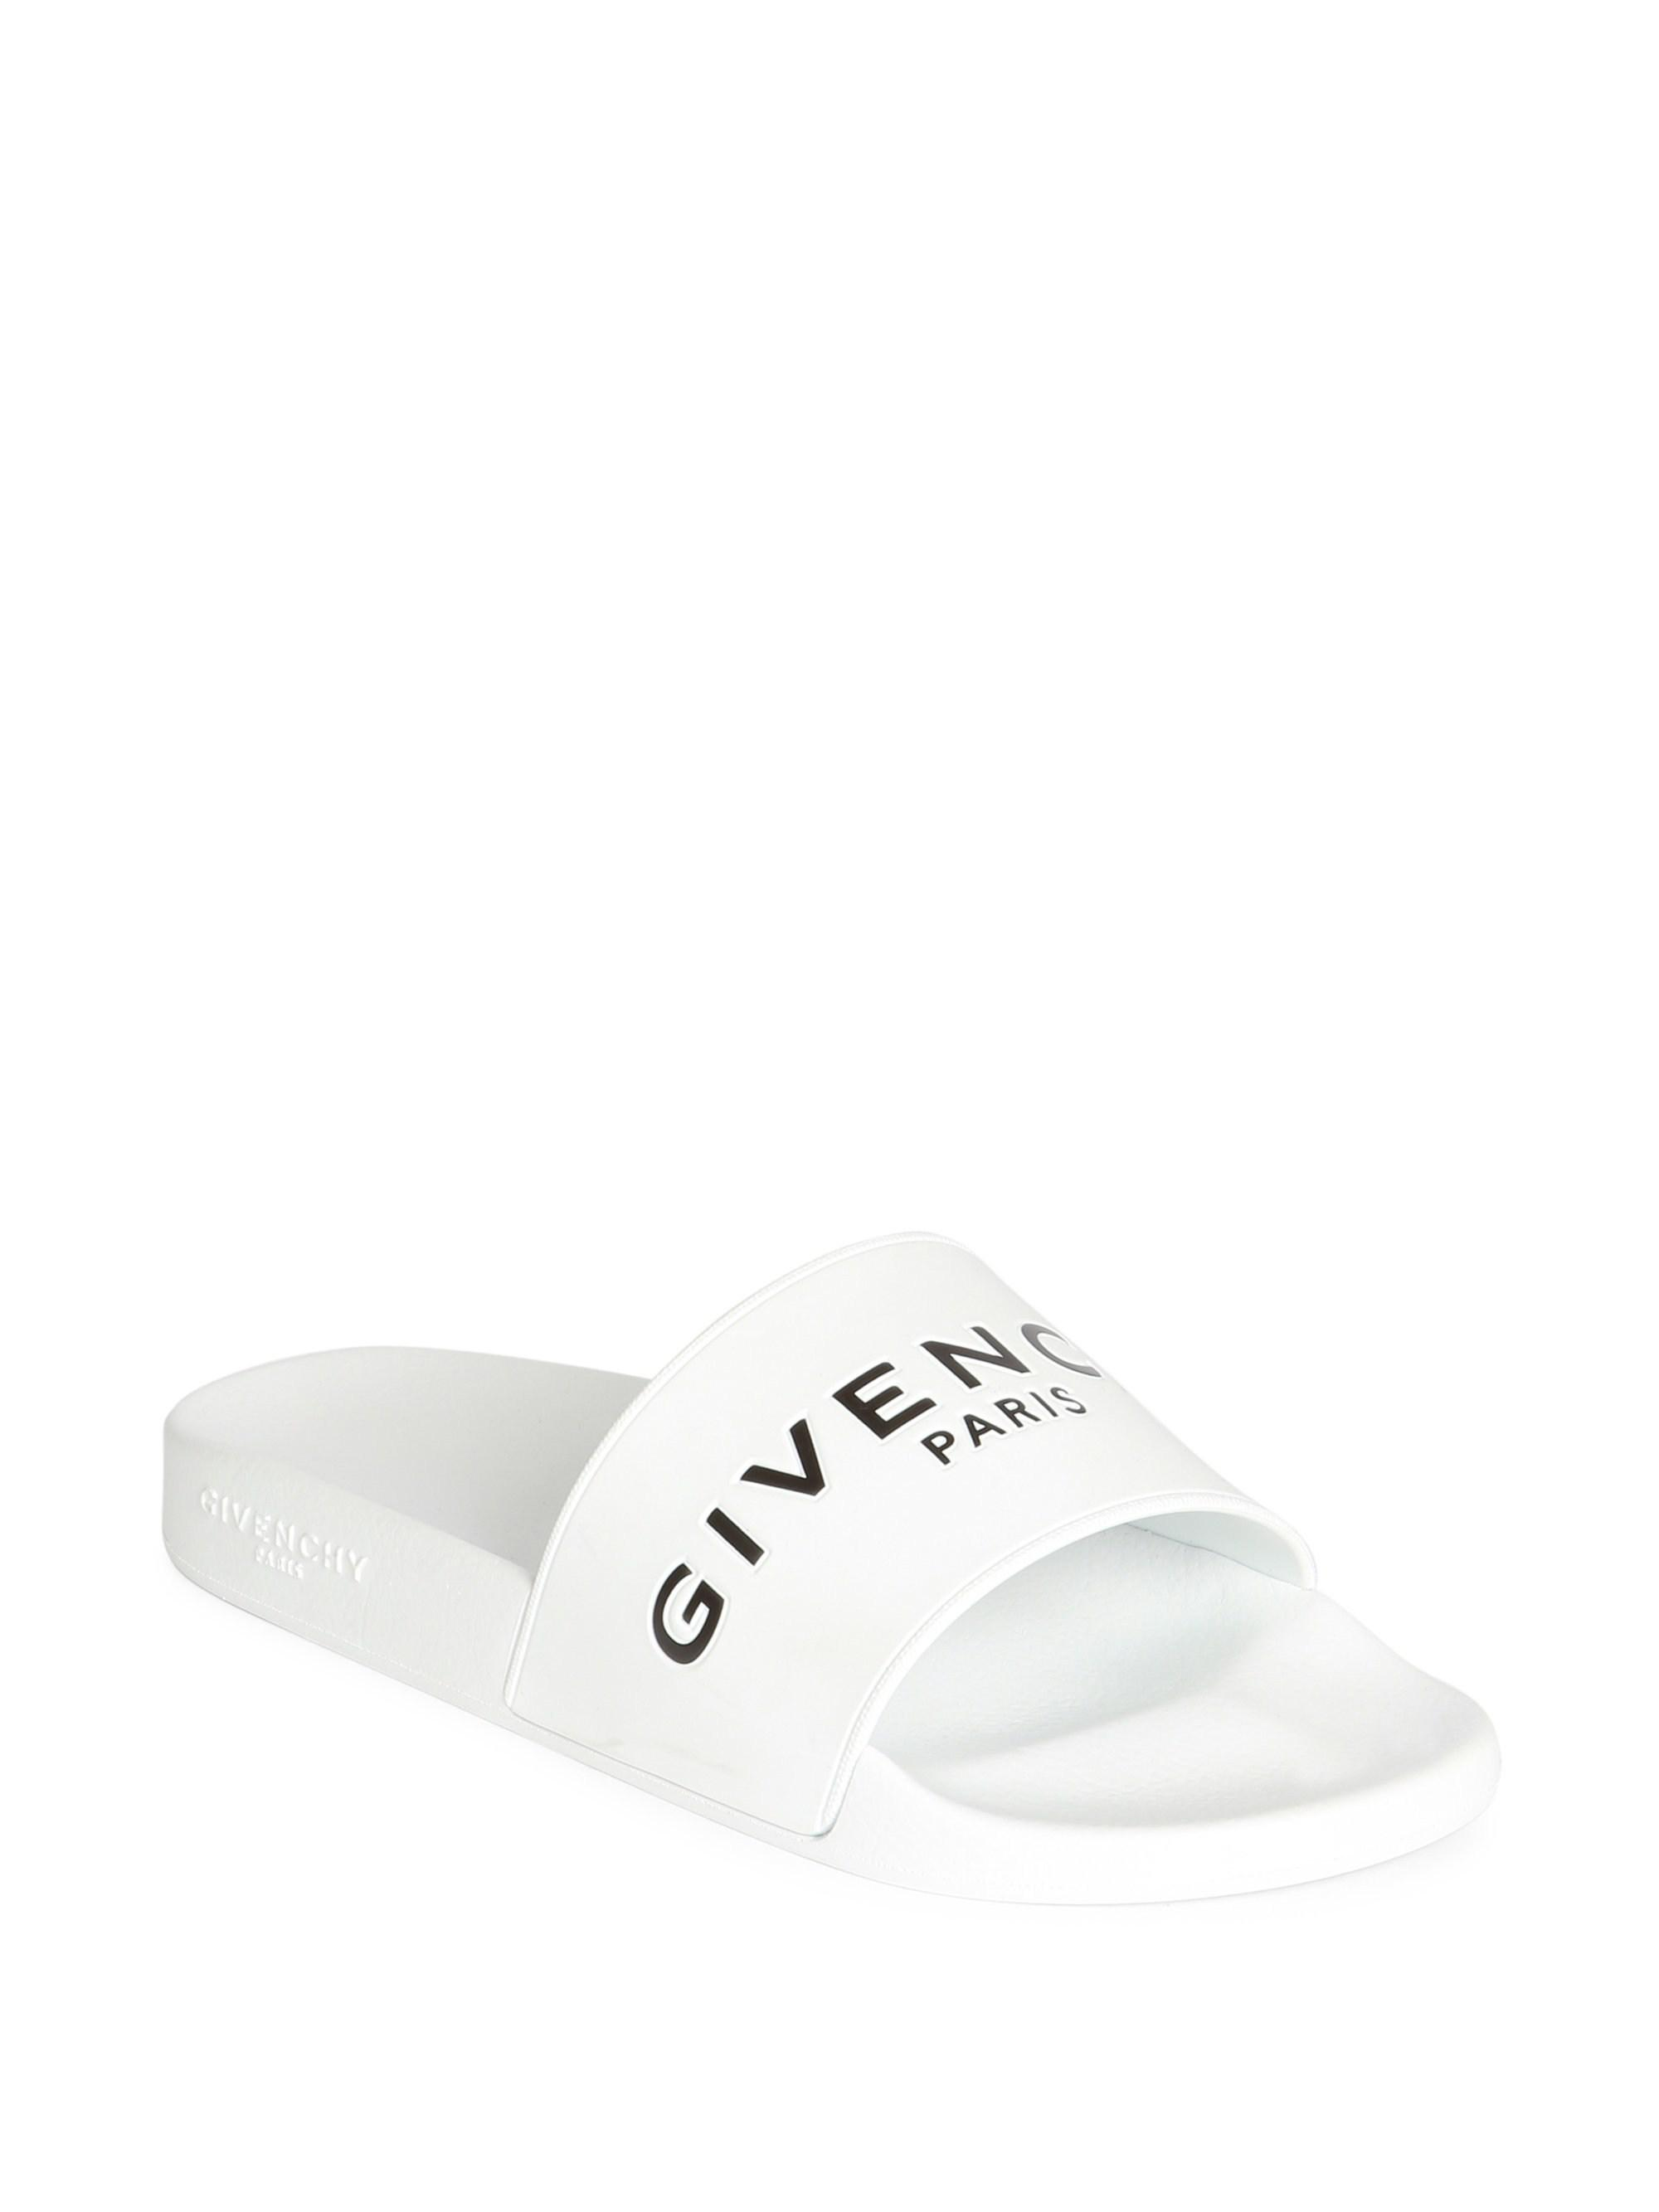 c12600e0f37d6 Givenchy - White Logo Slide Sandals for Men - Lyst. View fullscreen